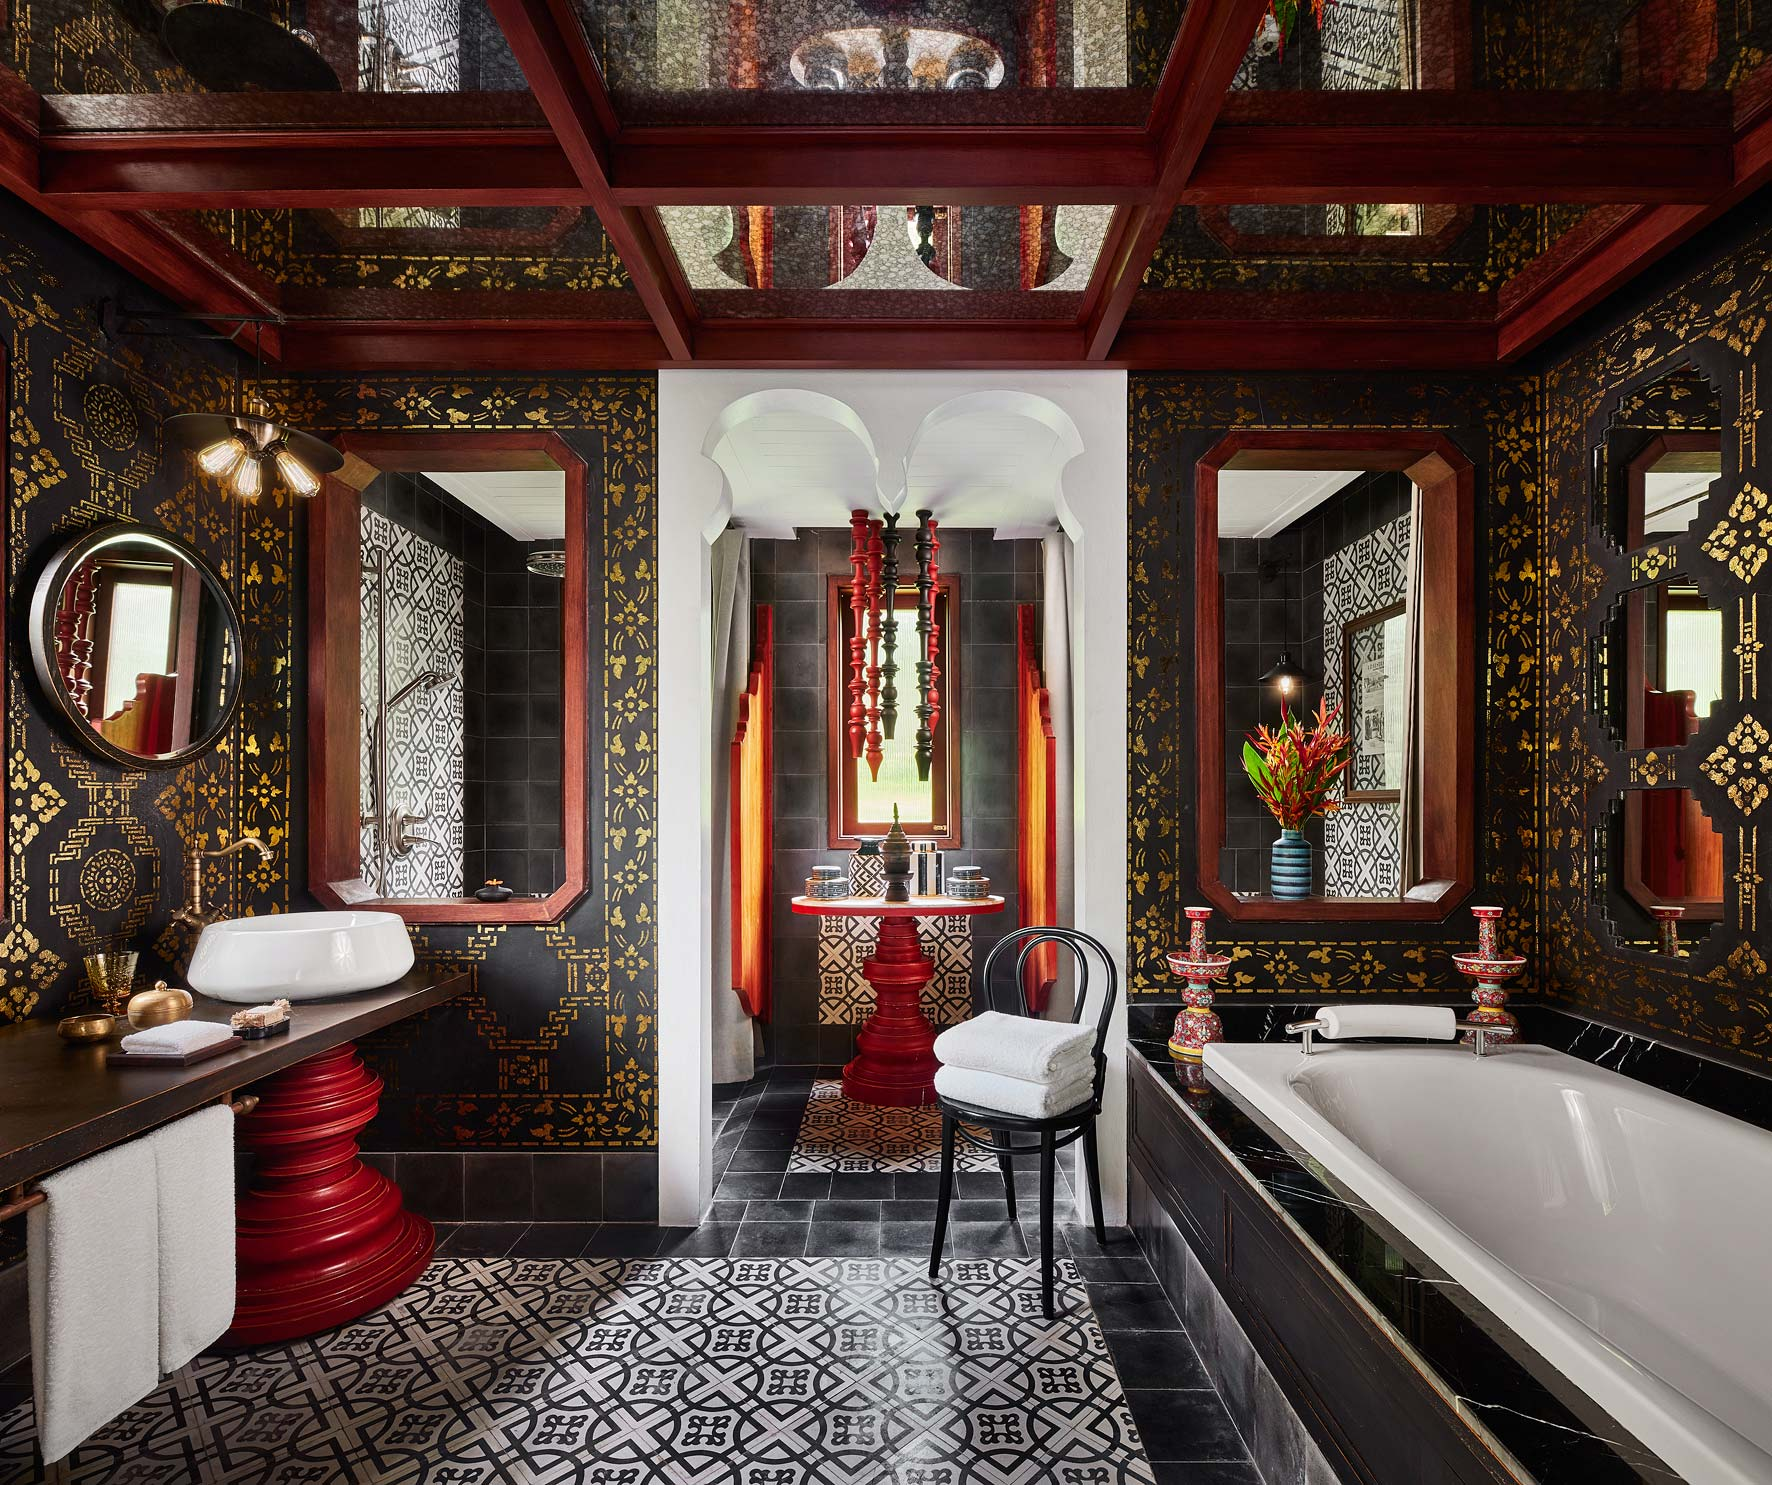 Owen Raggett,  architectural photographer Singapore. Rosewood Hotel, Luang Prabang, Laos. Architectural photographer Asia